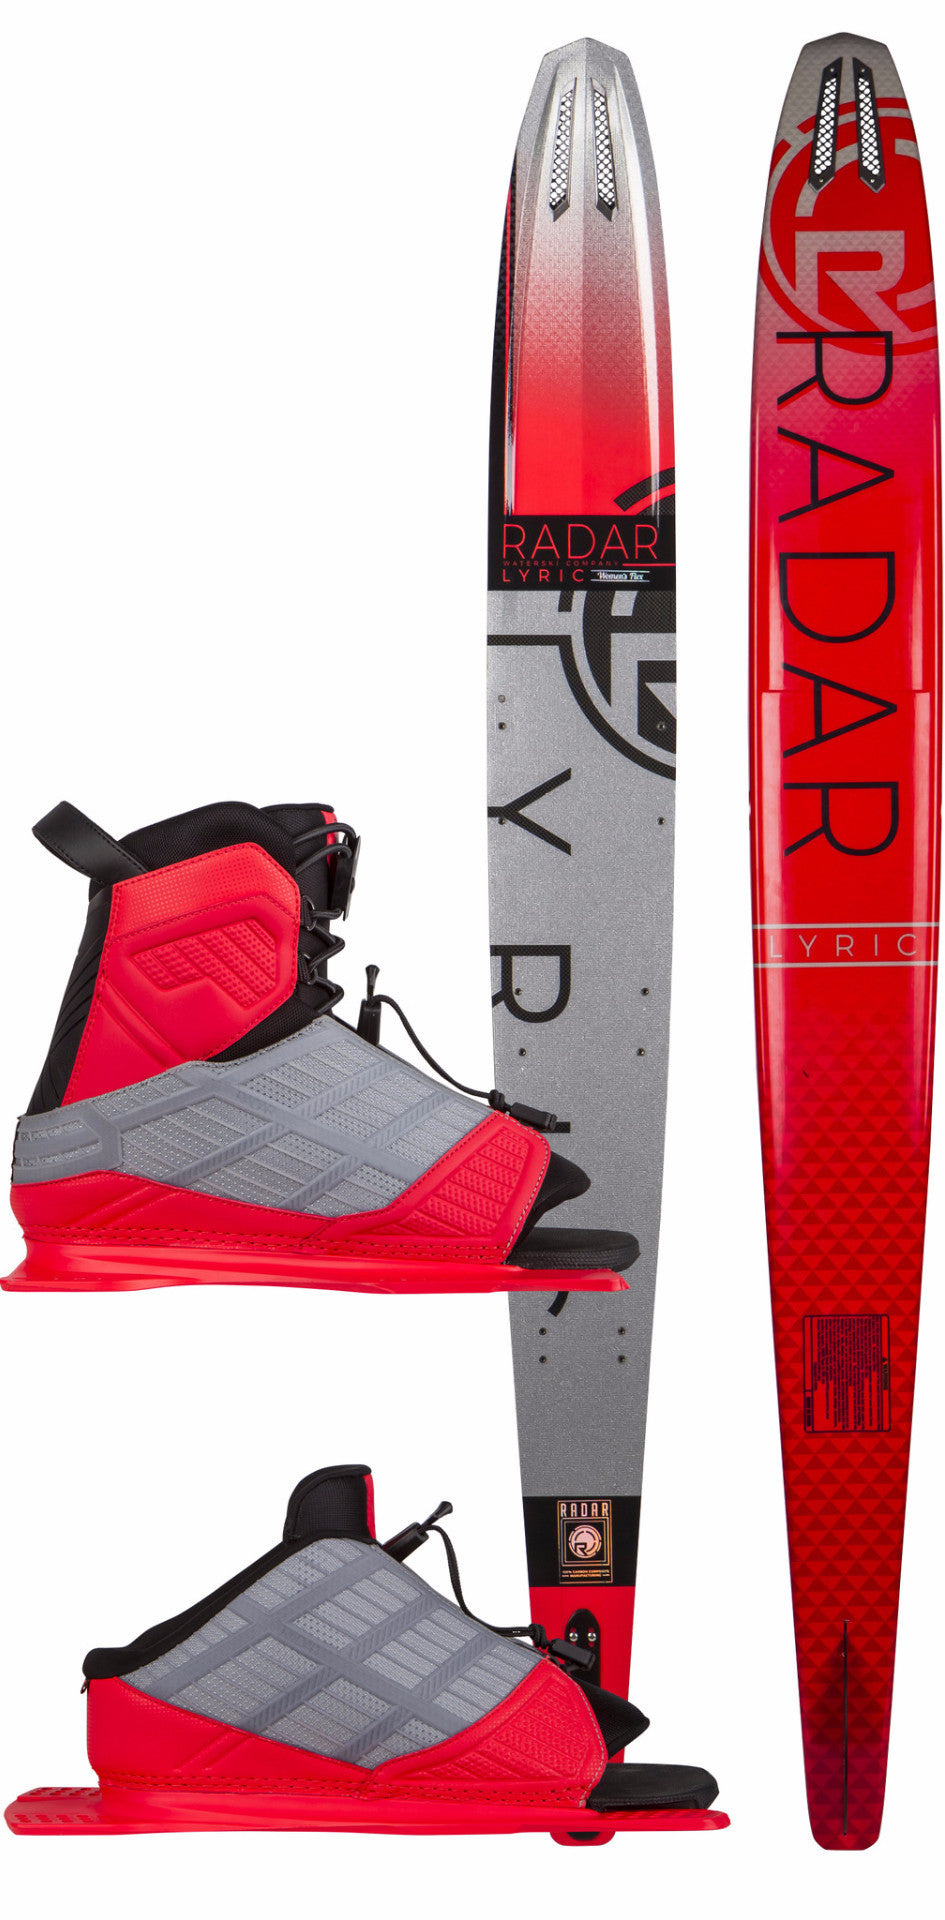 Radar Lyric Package - Water Ski with boots and bindings